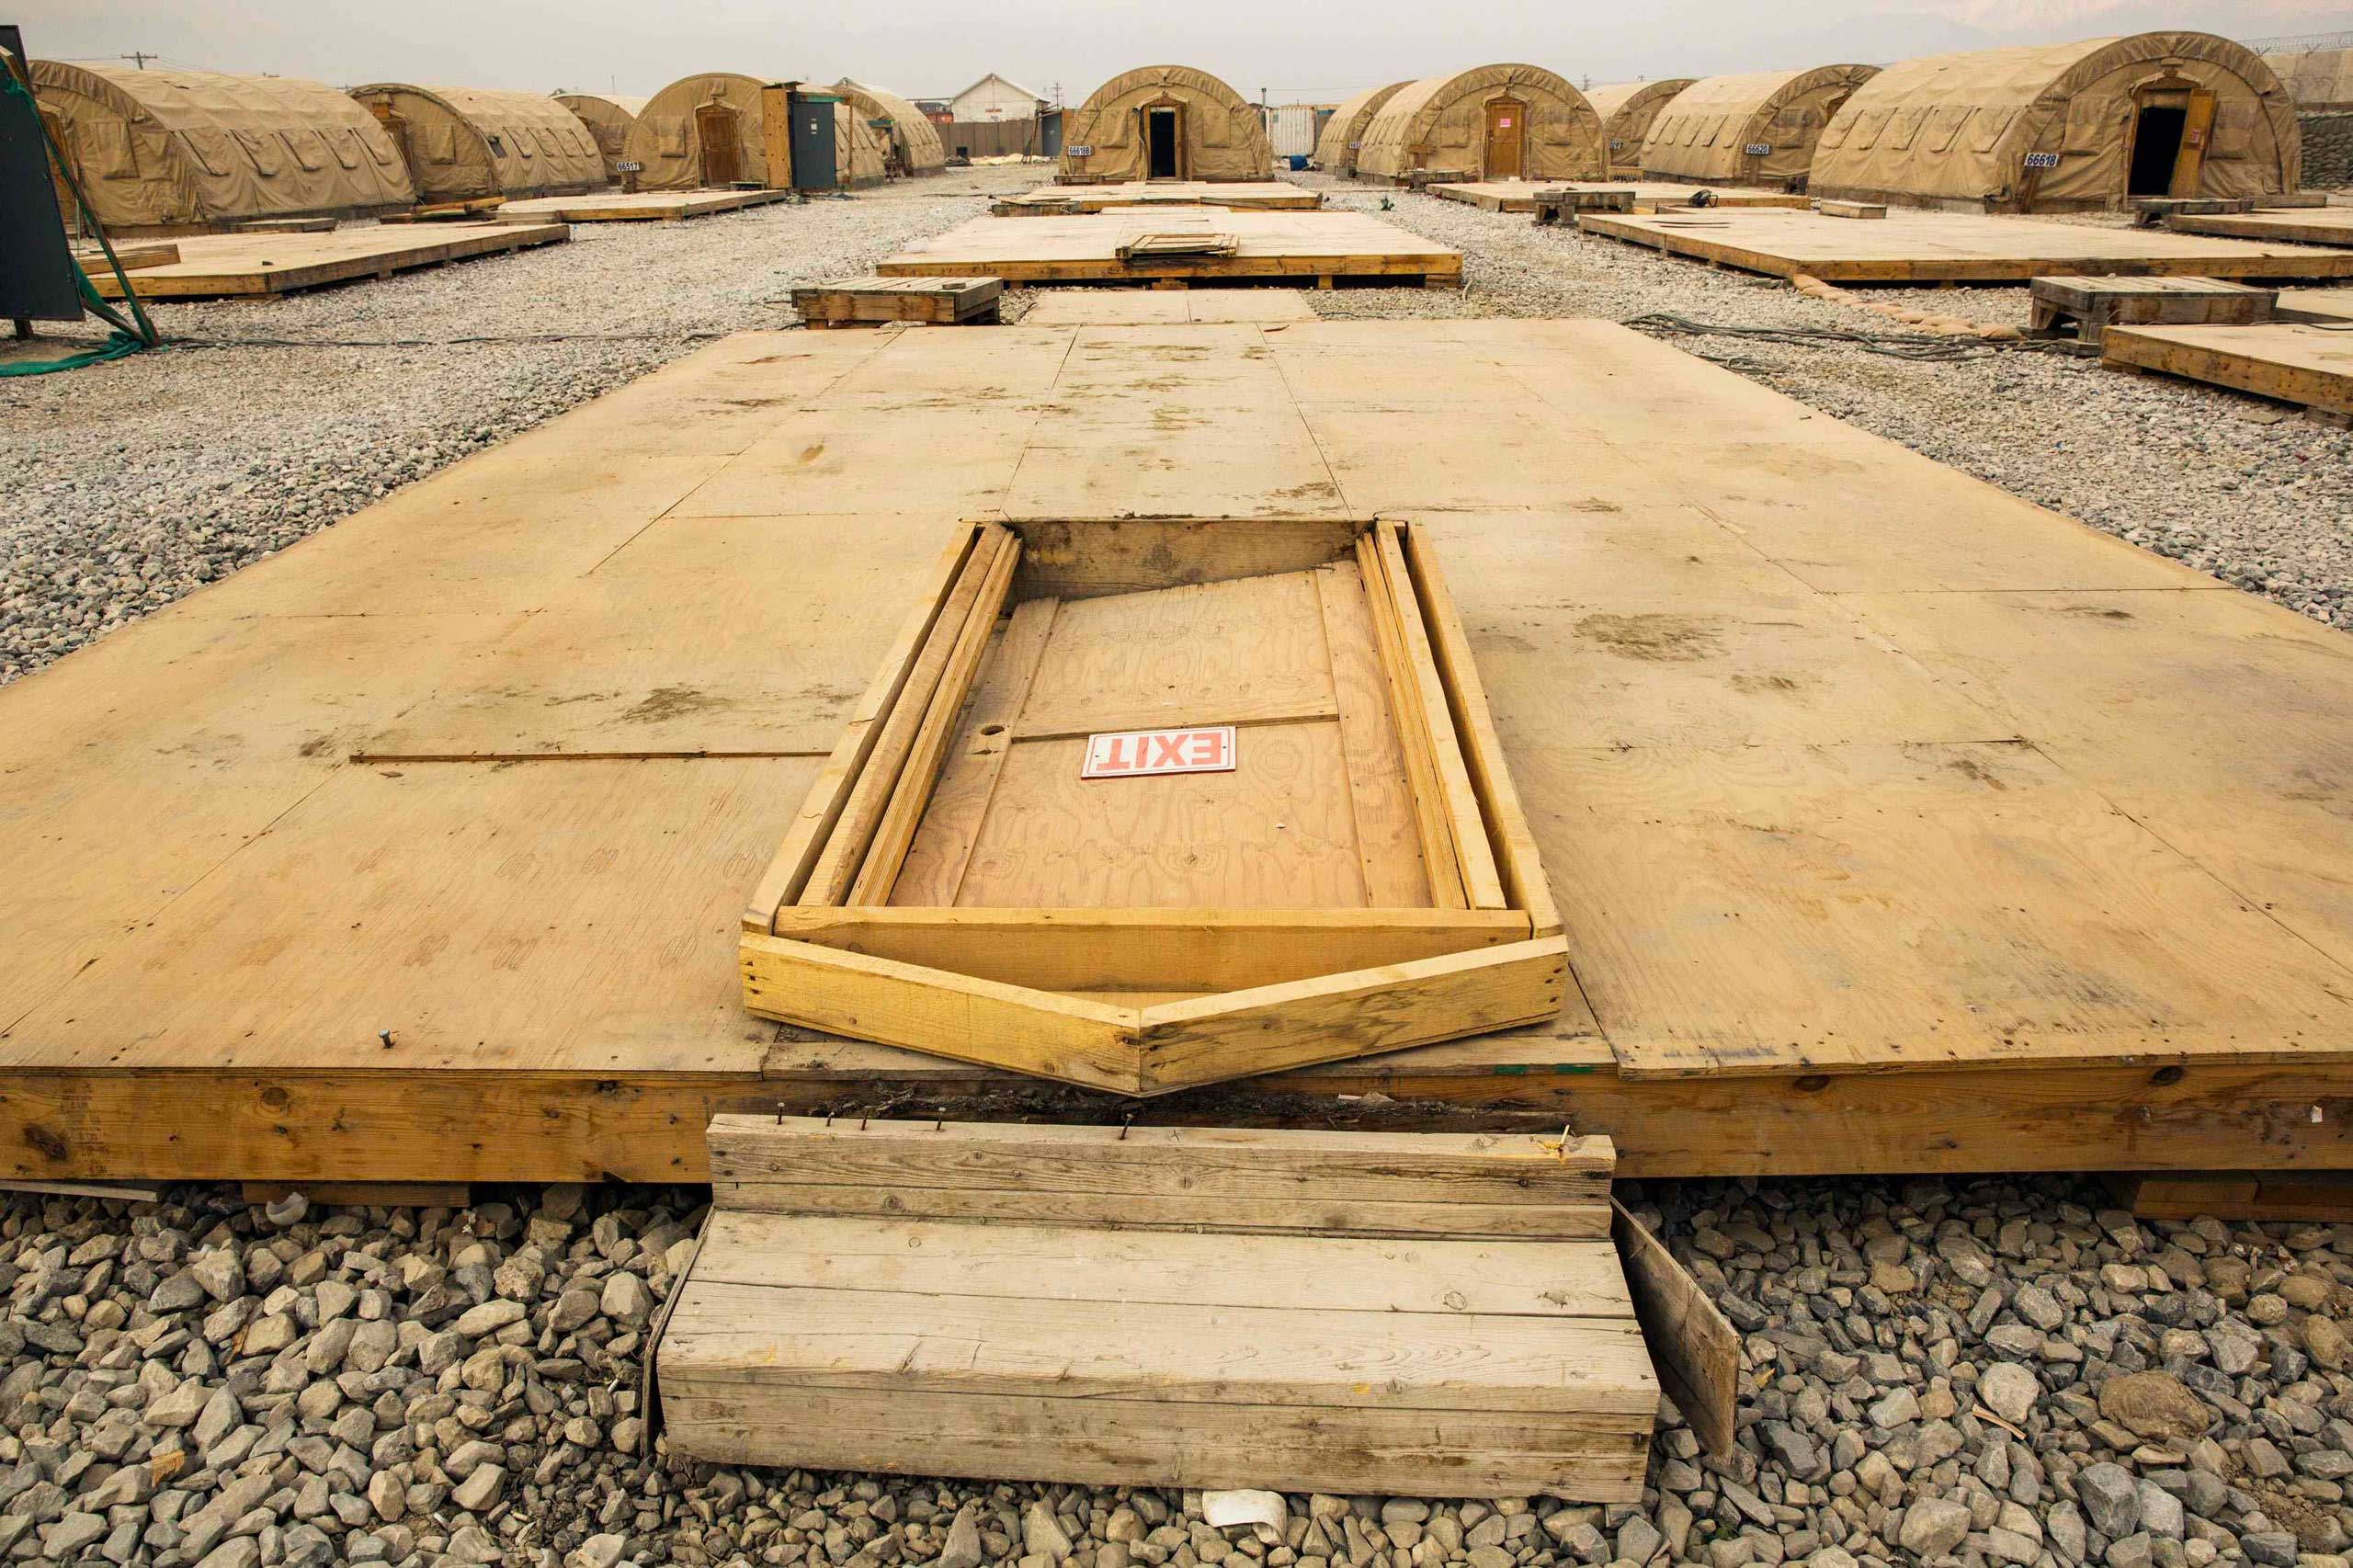 Jan, 2, 2015. A door rests on the floor of a dismantled tent at the Bagram Air Field in the Parwan province of Afghanistan. The base is being shrunk by demolishing large swaths of housing in order to hold roughly 13,000 foreign troops.